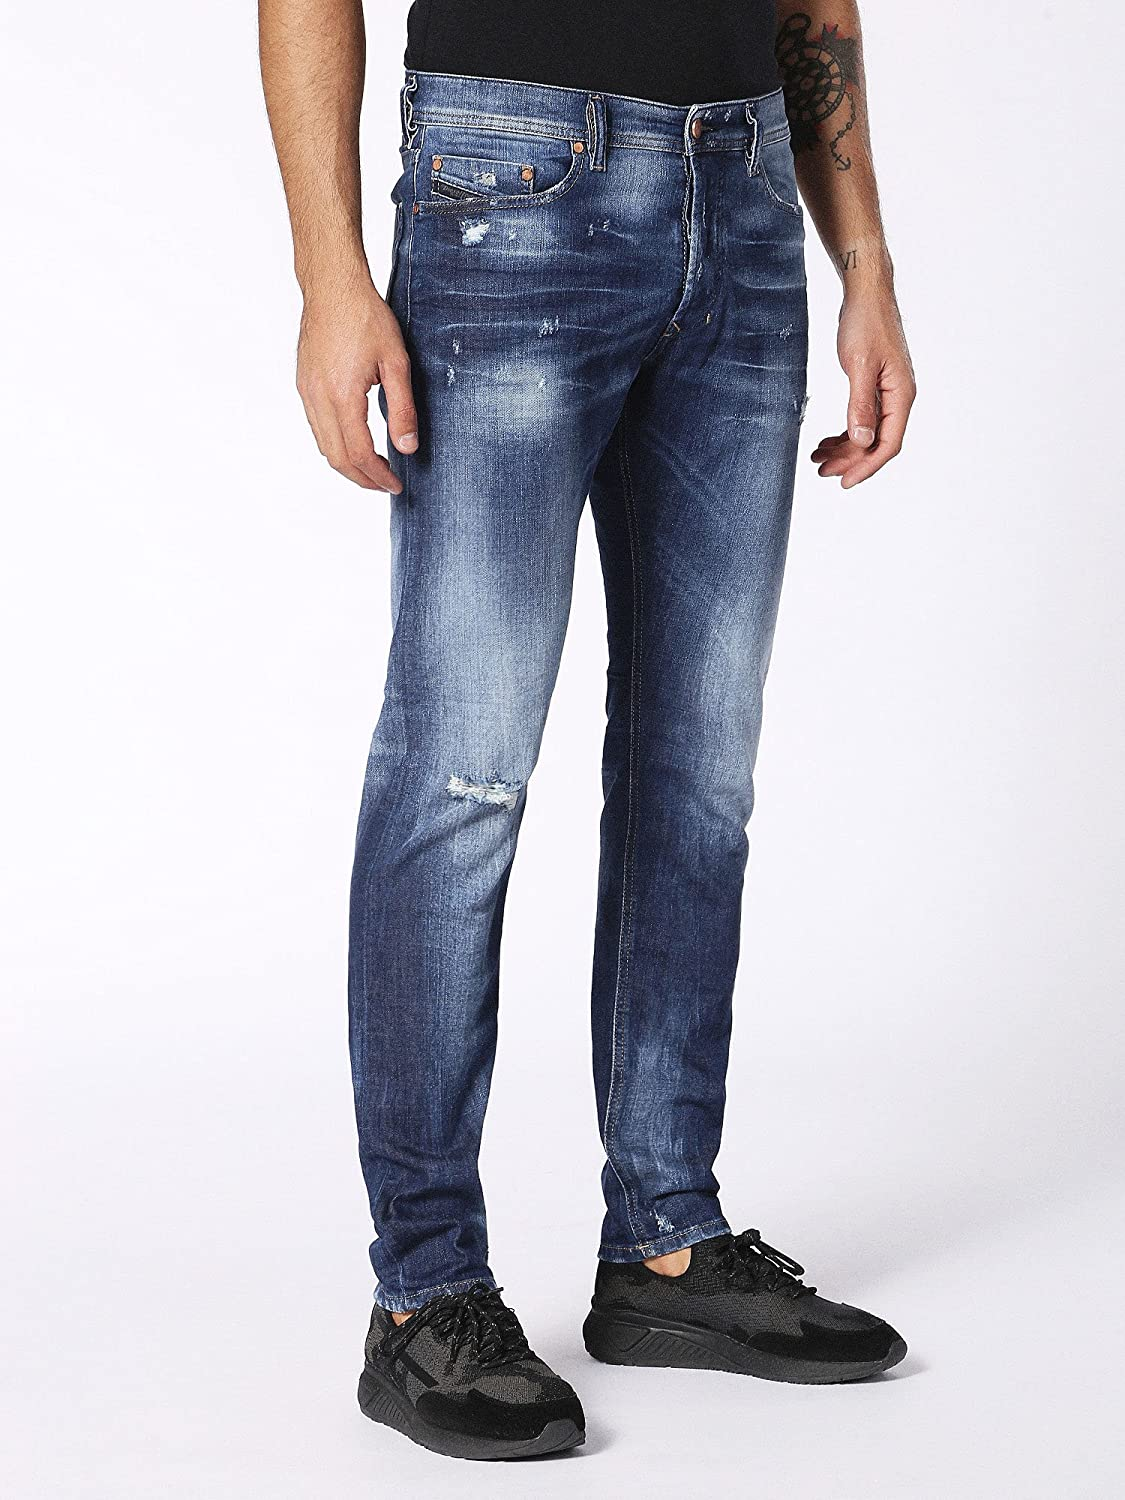 Amazon.com: Diesel Mens Jeans Tepphar Slim Fit Cotton ...